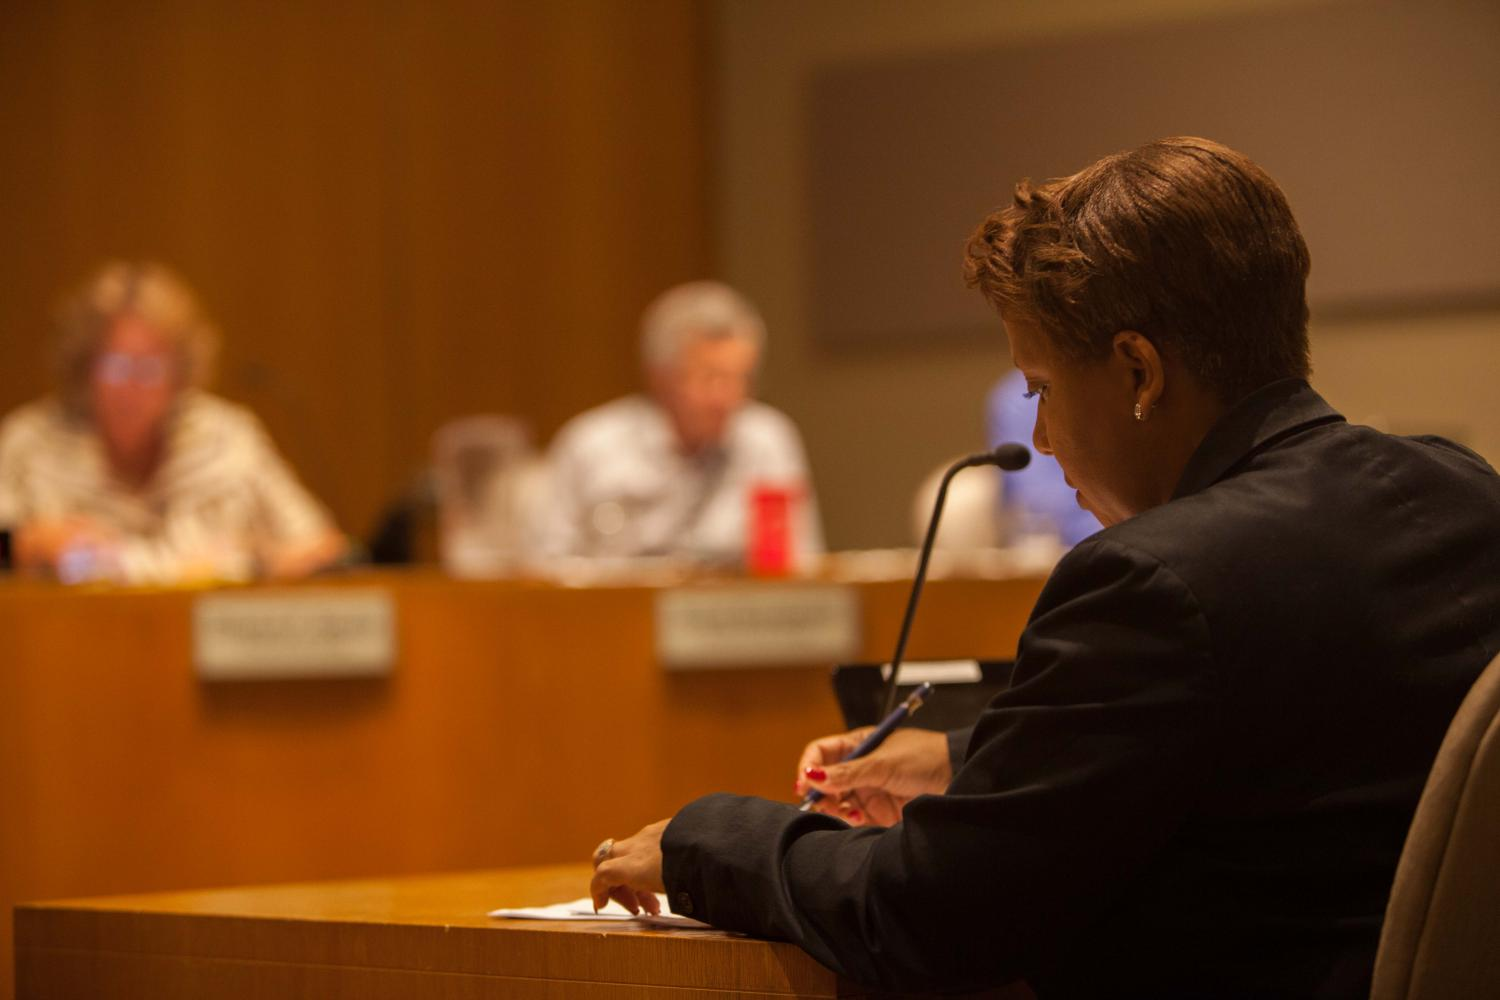 Oberlin City Council Clerk Belinda Anderson at Monday's City Council meeting, where the council discussed a potential amendment to Oberlin's City Codes that would give increased rights and protections to LGBTQ community members.